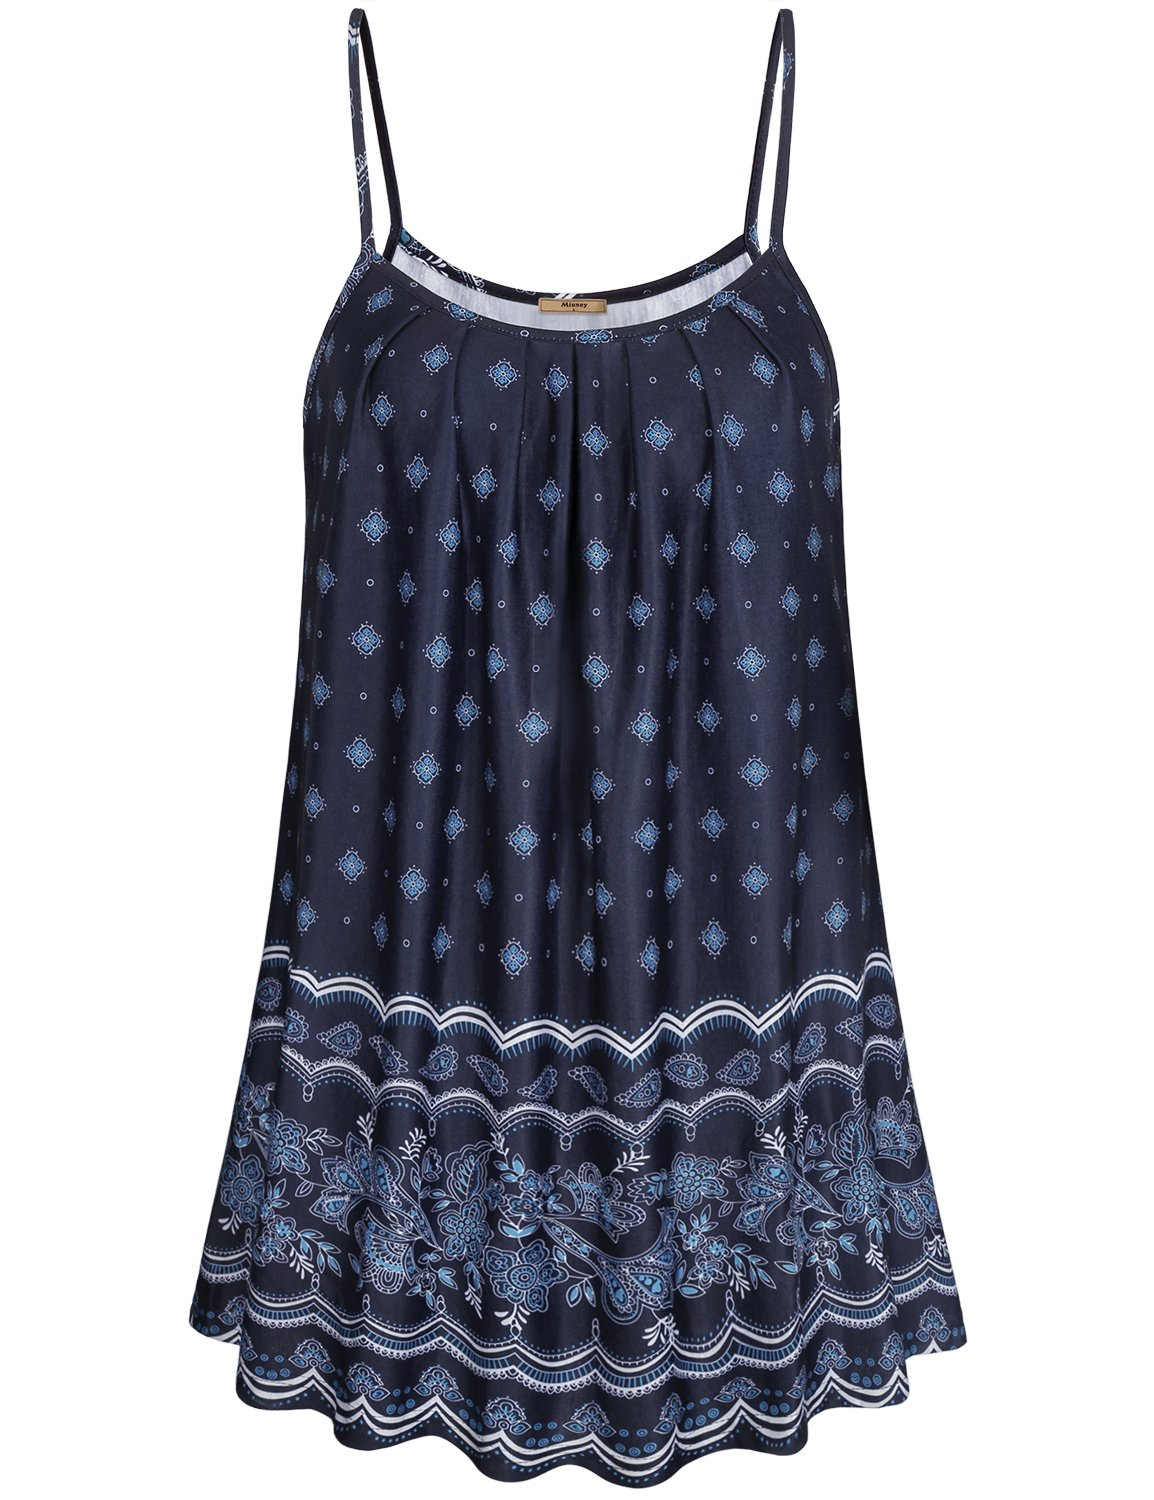 Miusey Paisley Shirt for Women, Ladies Cute Flowy Tops Pleated Neckline Printed Patterned Bohemian Swing Fit and Flare Camisoles Dress Breezy Perfect Cool Style Black L